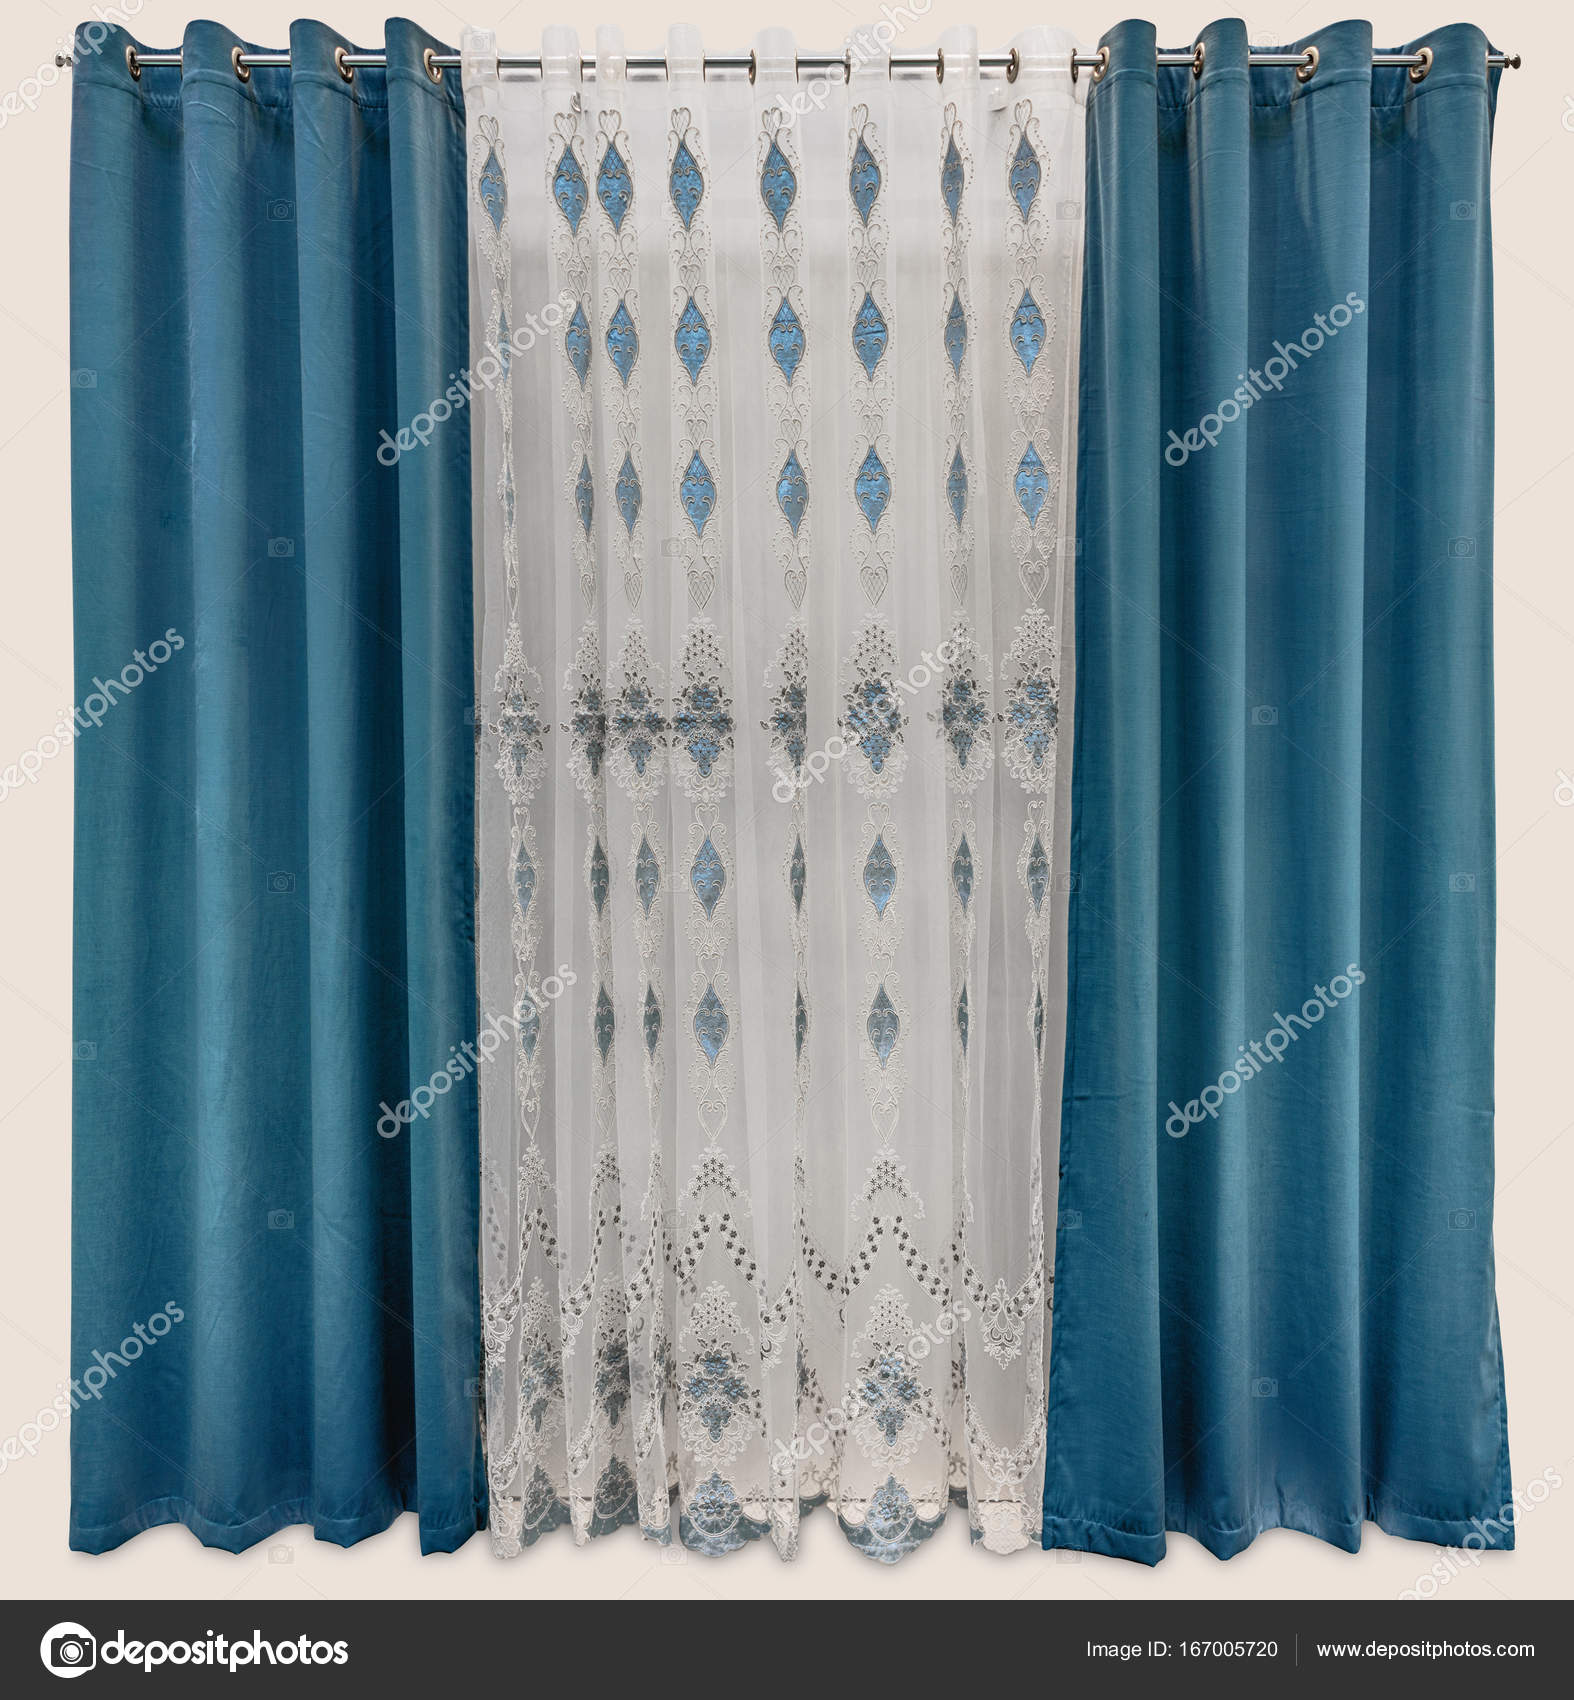 Stylish Interior Design With A Cloth Blue Curtains Eyelets On The Round Cornice And Luxurious Tulle Patterns Photo By Fotiy